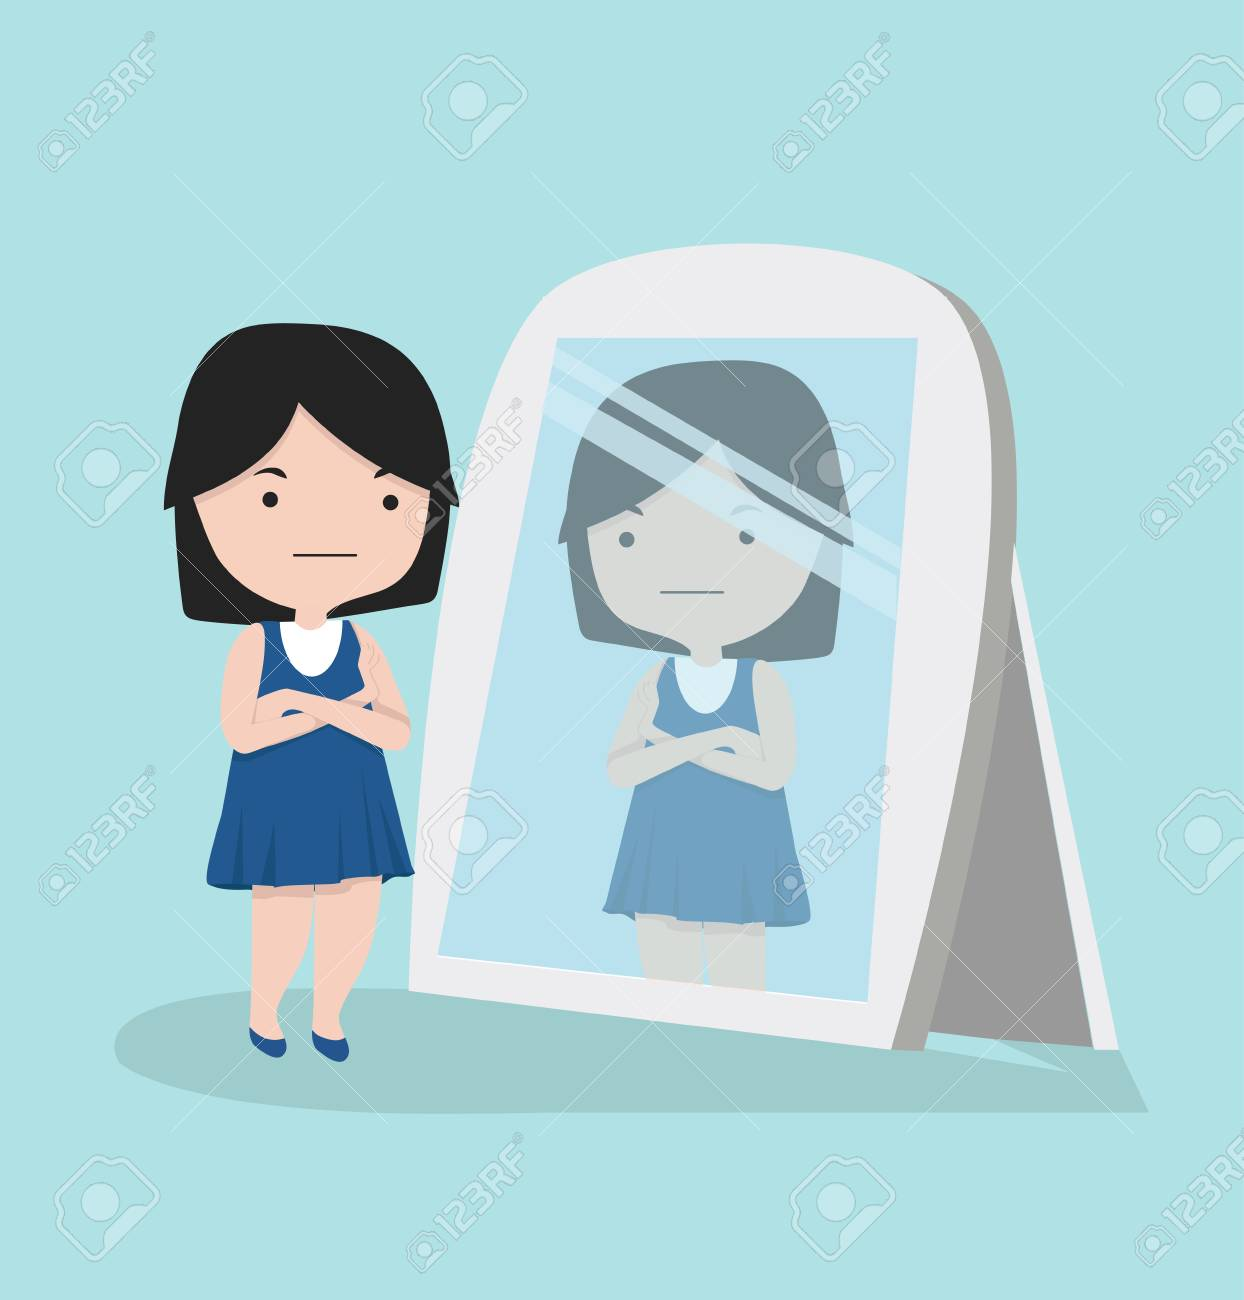 Small girl looking standing in front of the mirror - 110900977